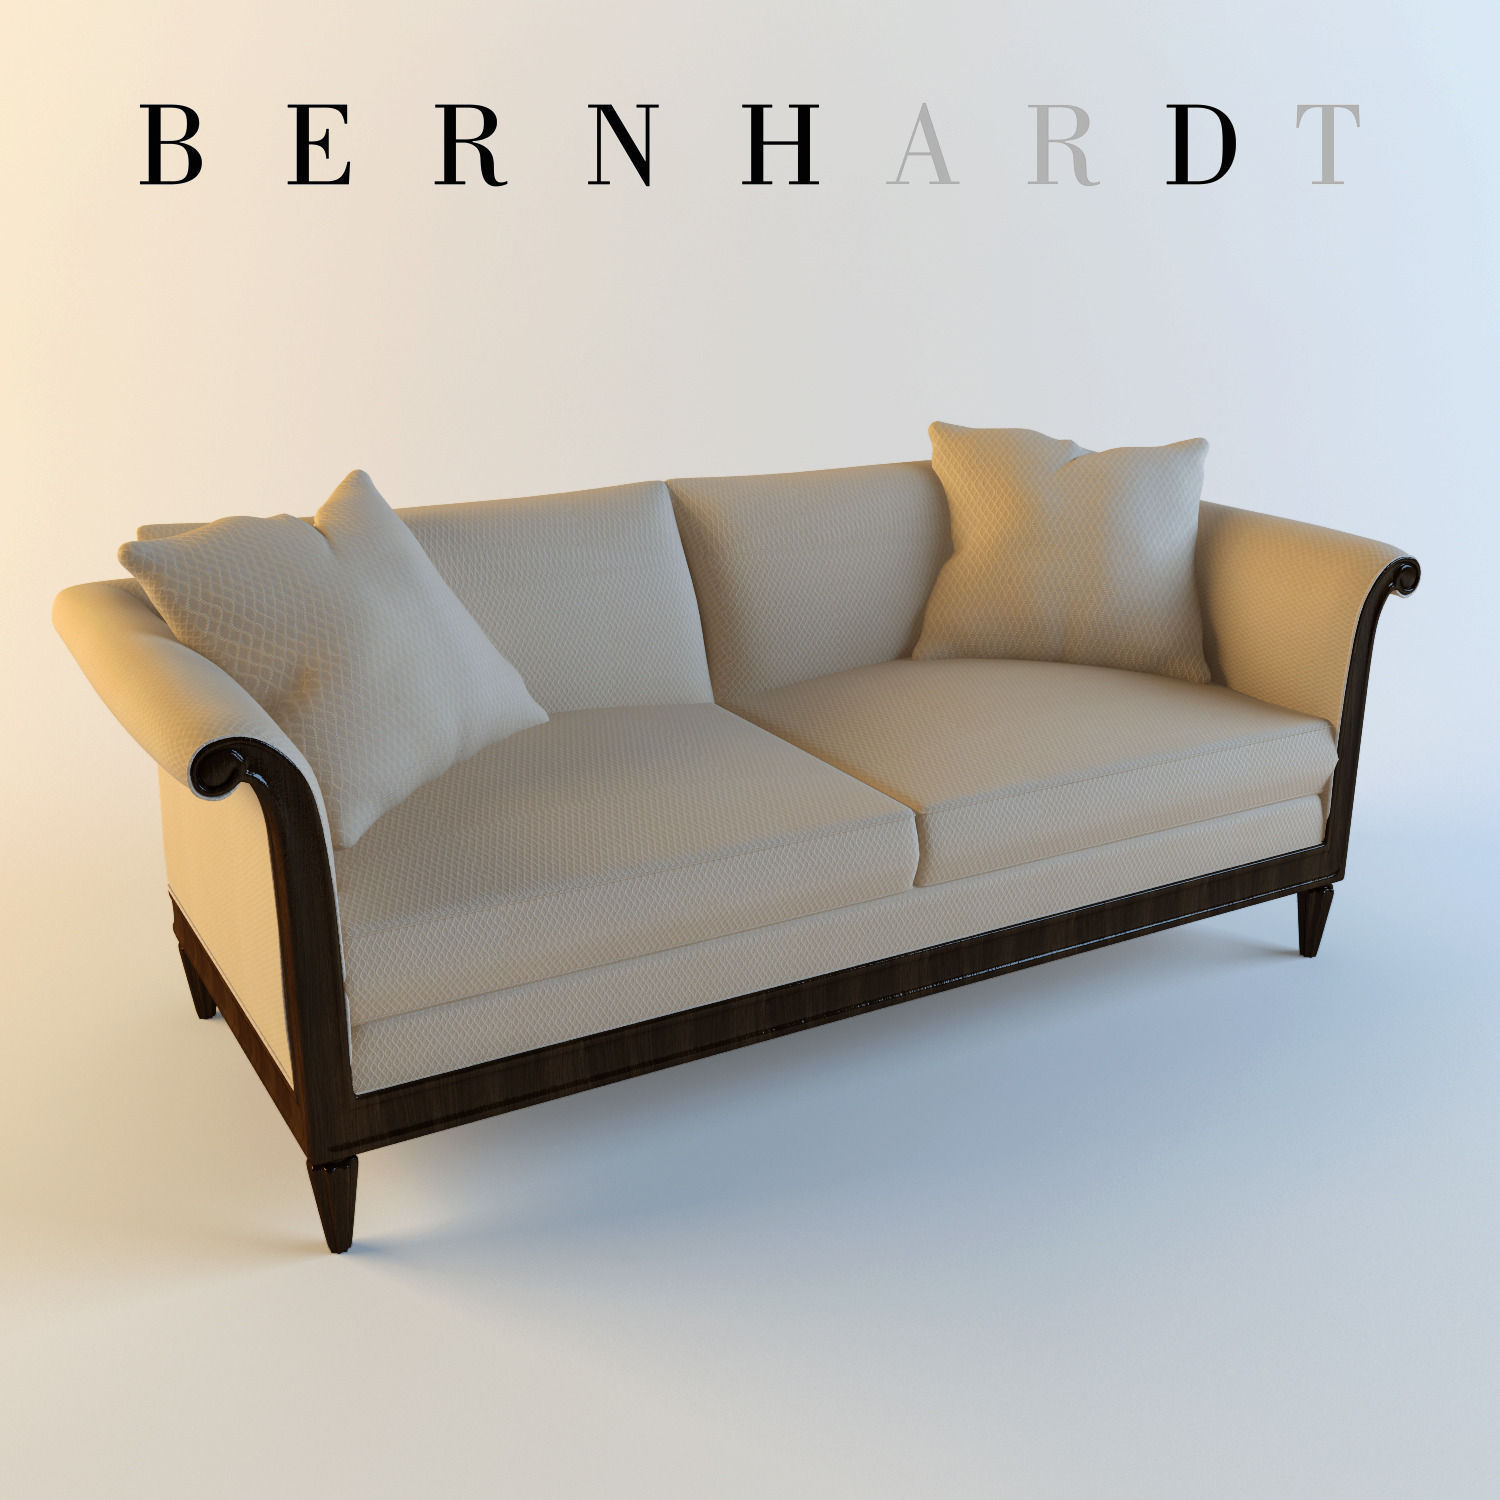 Bernhardt Traditional Sofa 3d Model Max 1